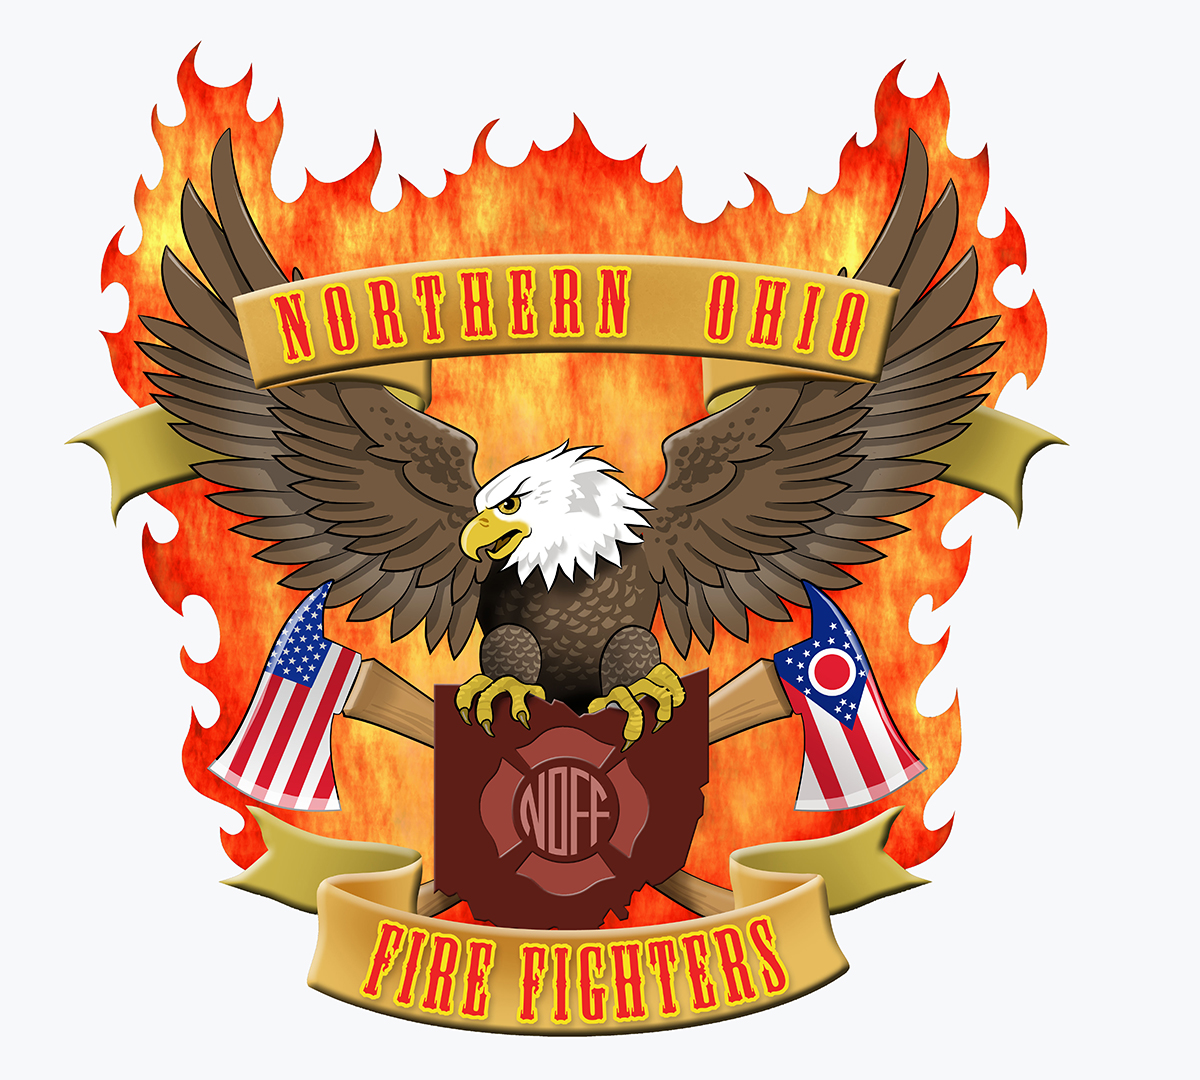 Northern Ohio Fire Fighters